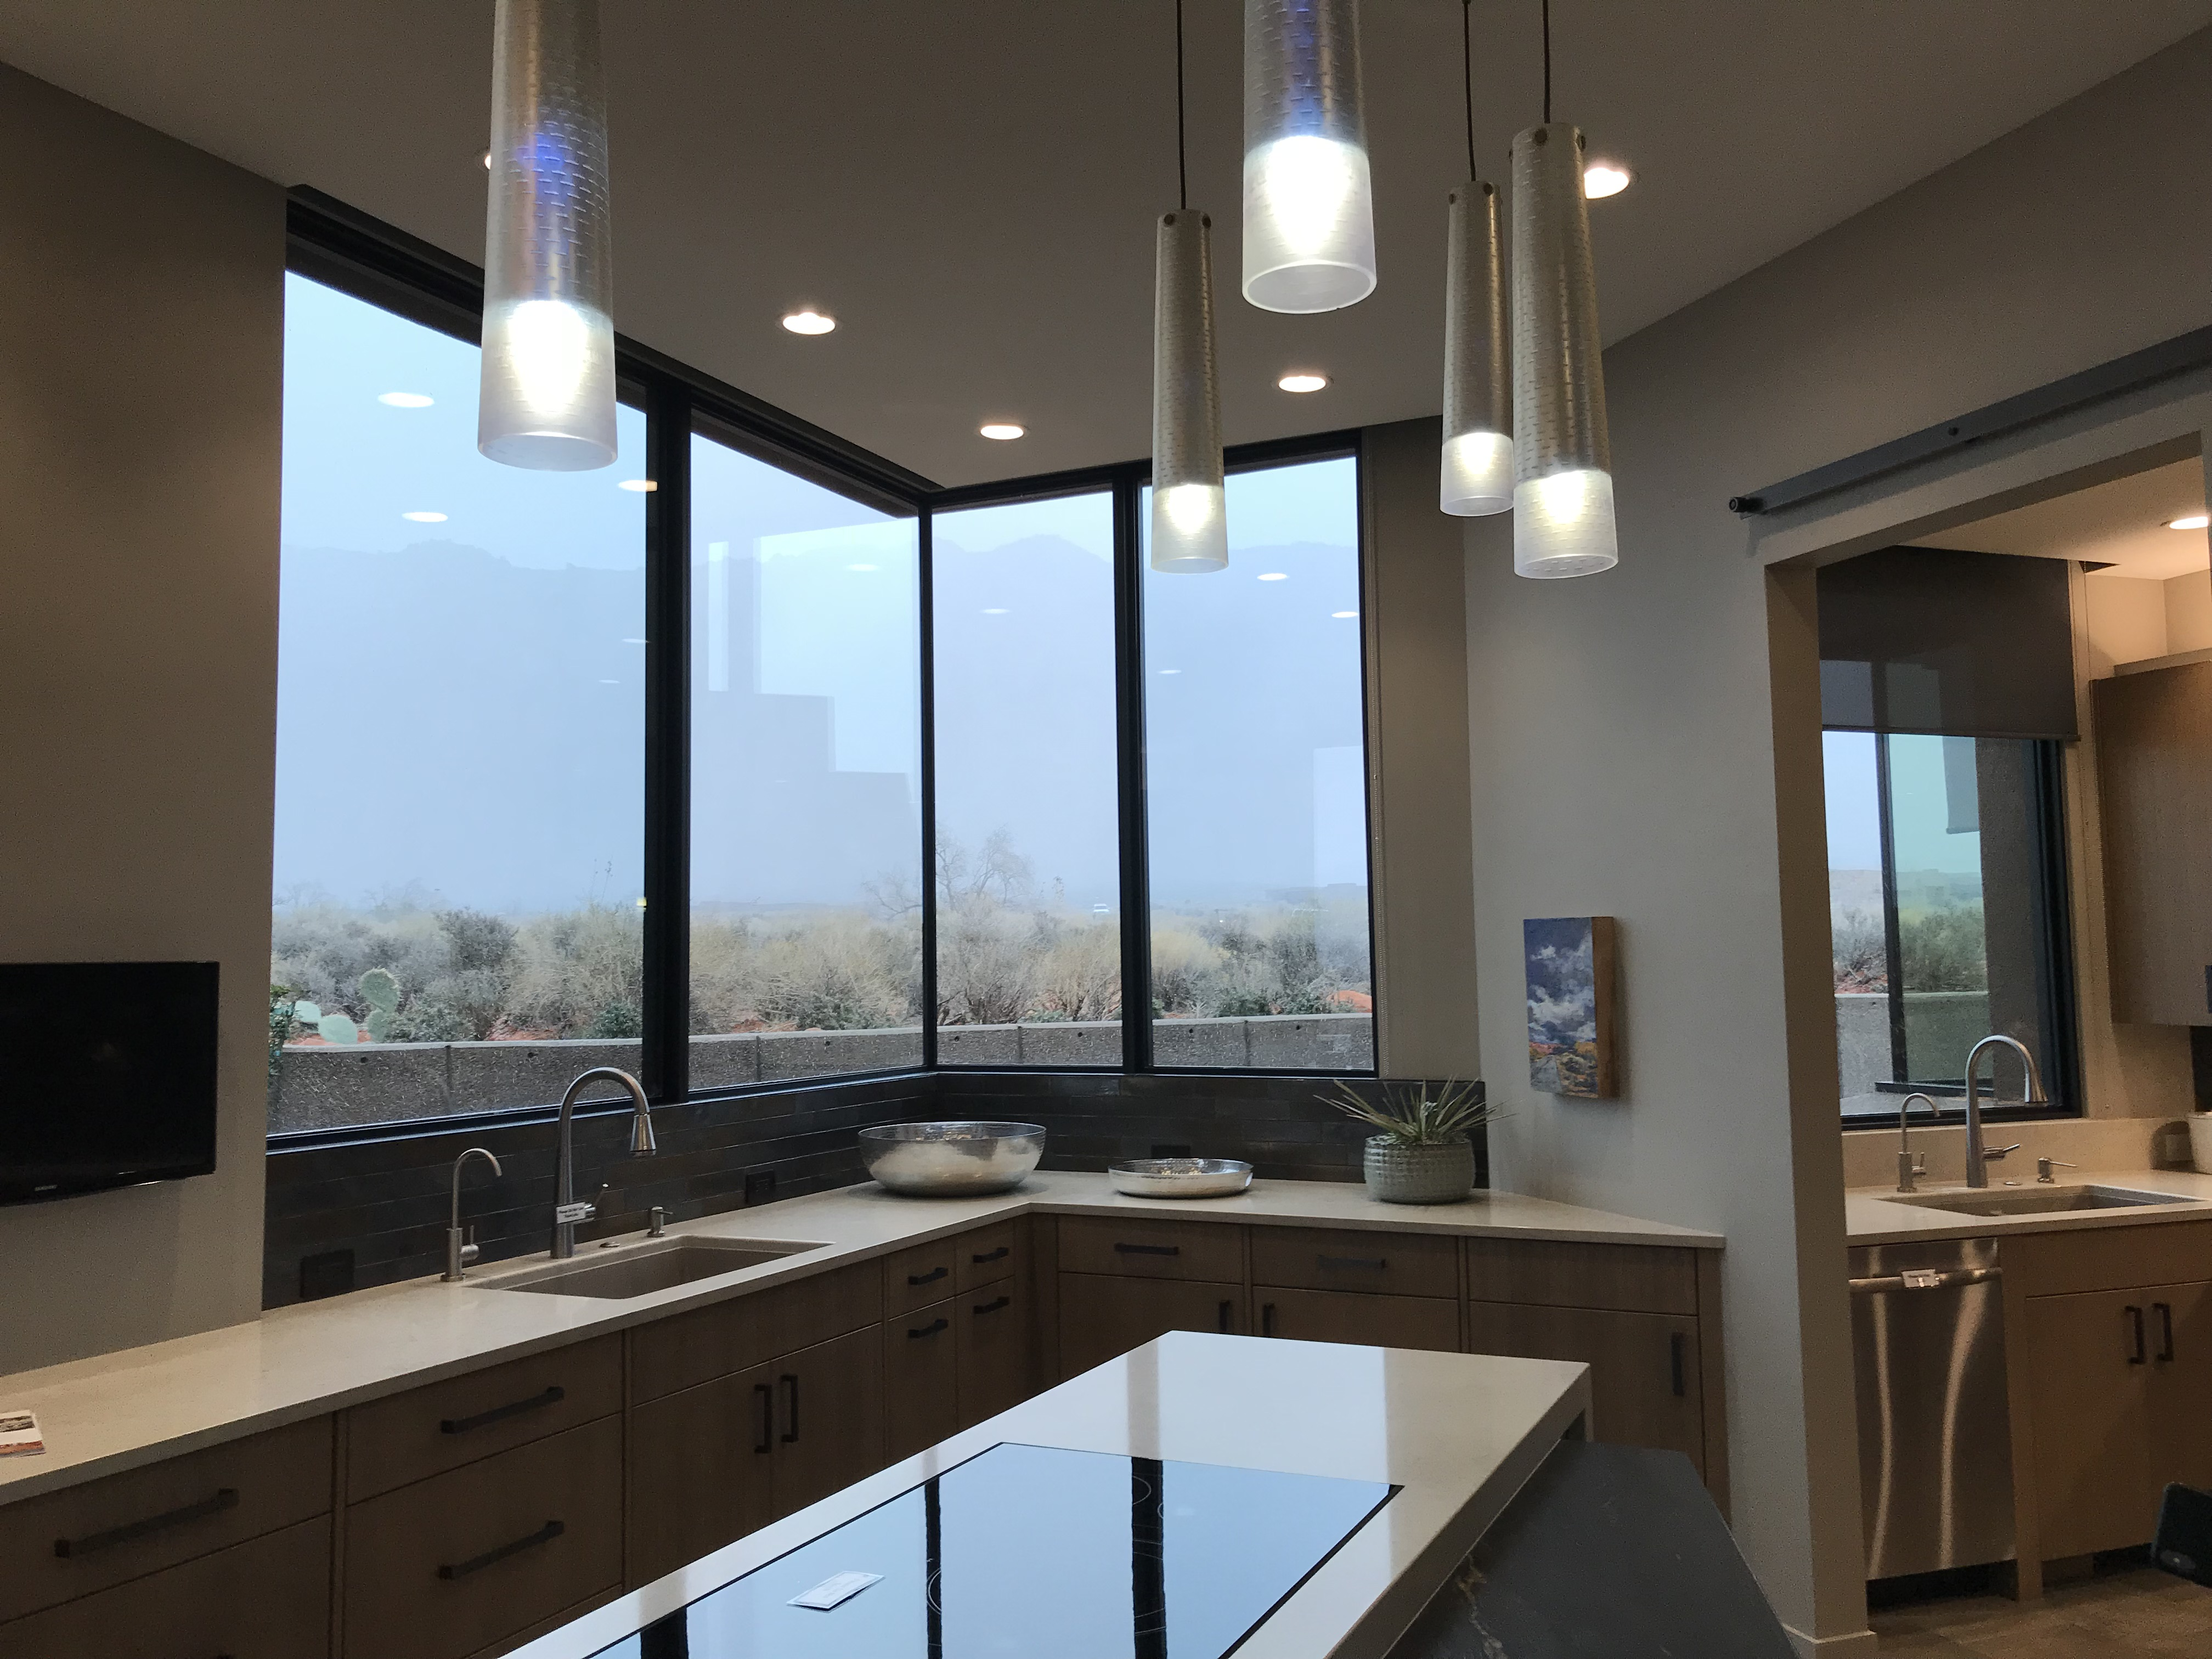 Usi Installed Windows At St George Parade Of Homes